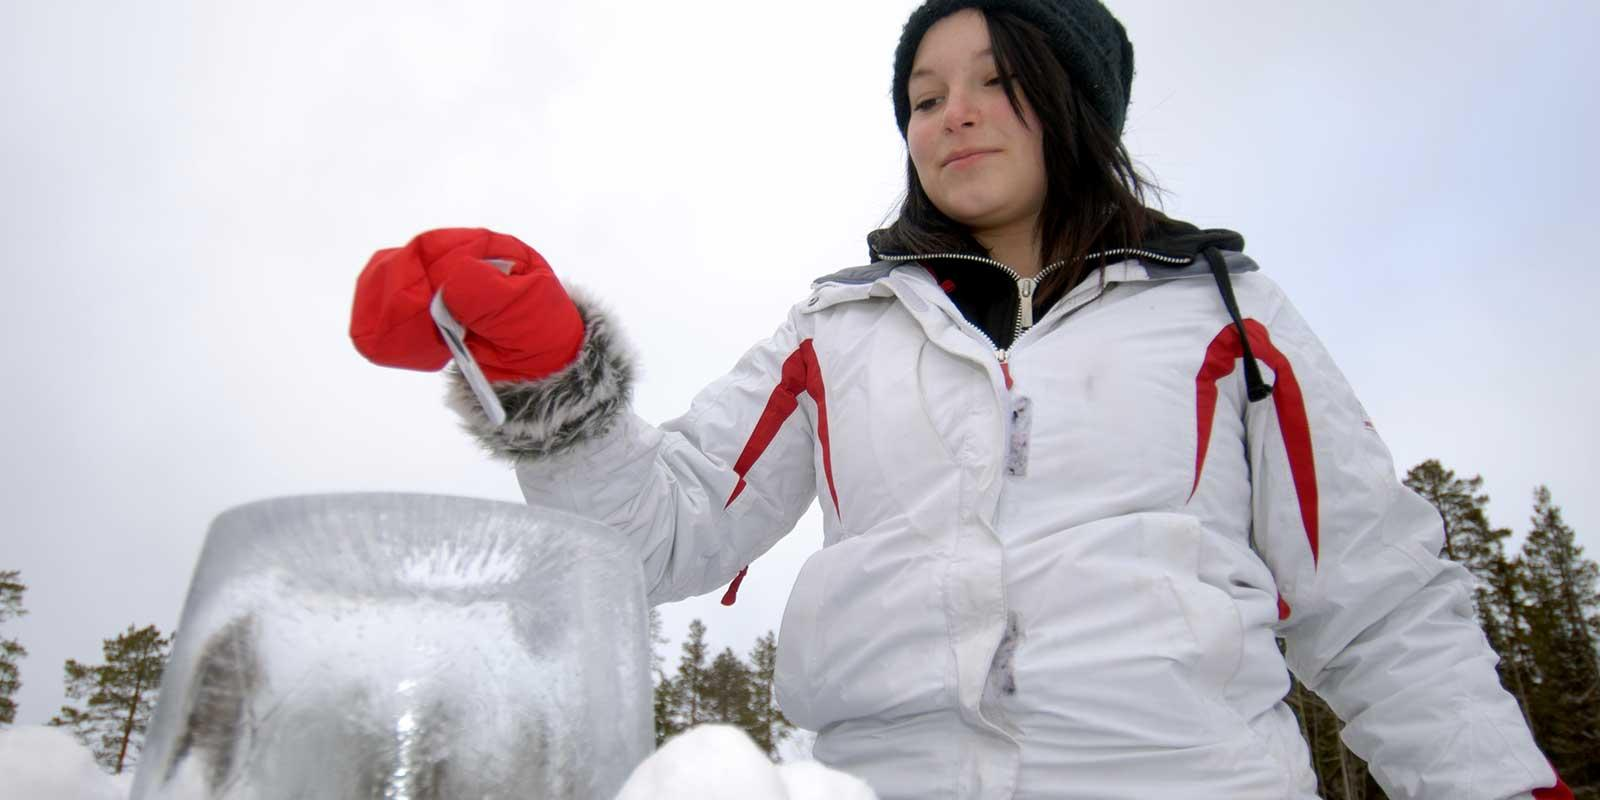 Girl putting ballot in ice ballot box